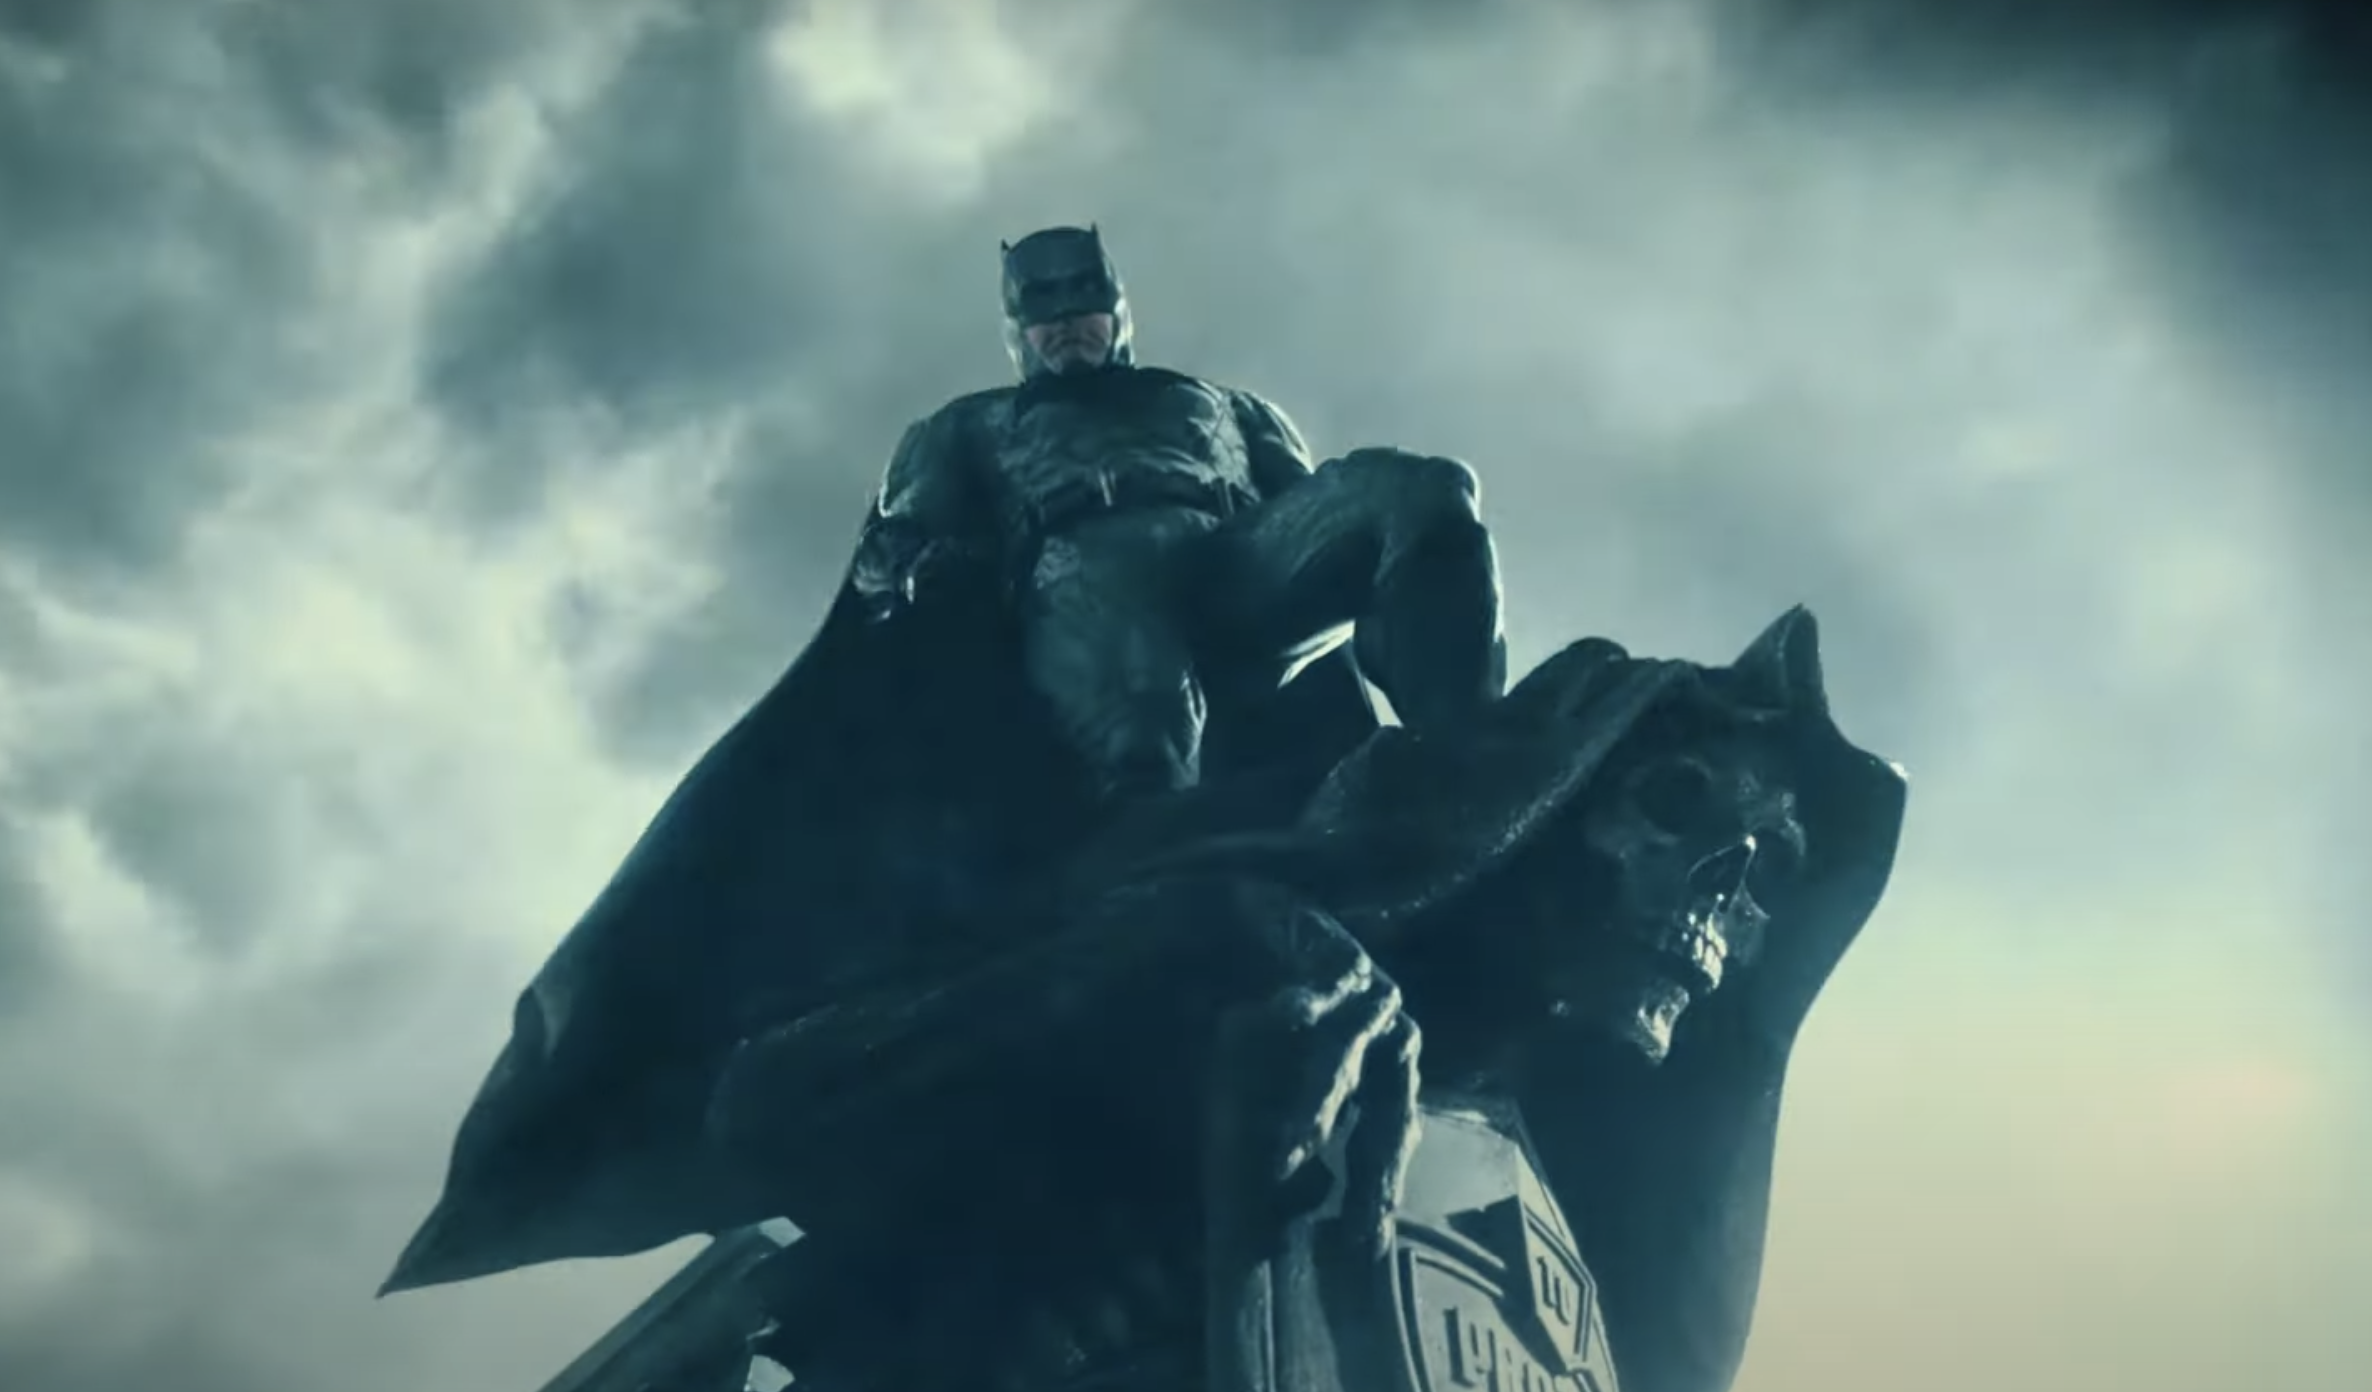 Justice League' Snyder Cut Trailer: New Footage | IndieWire